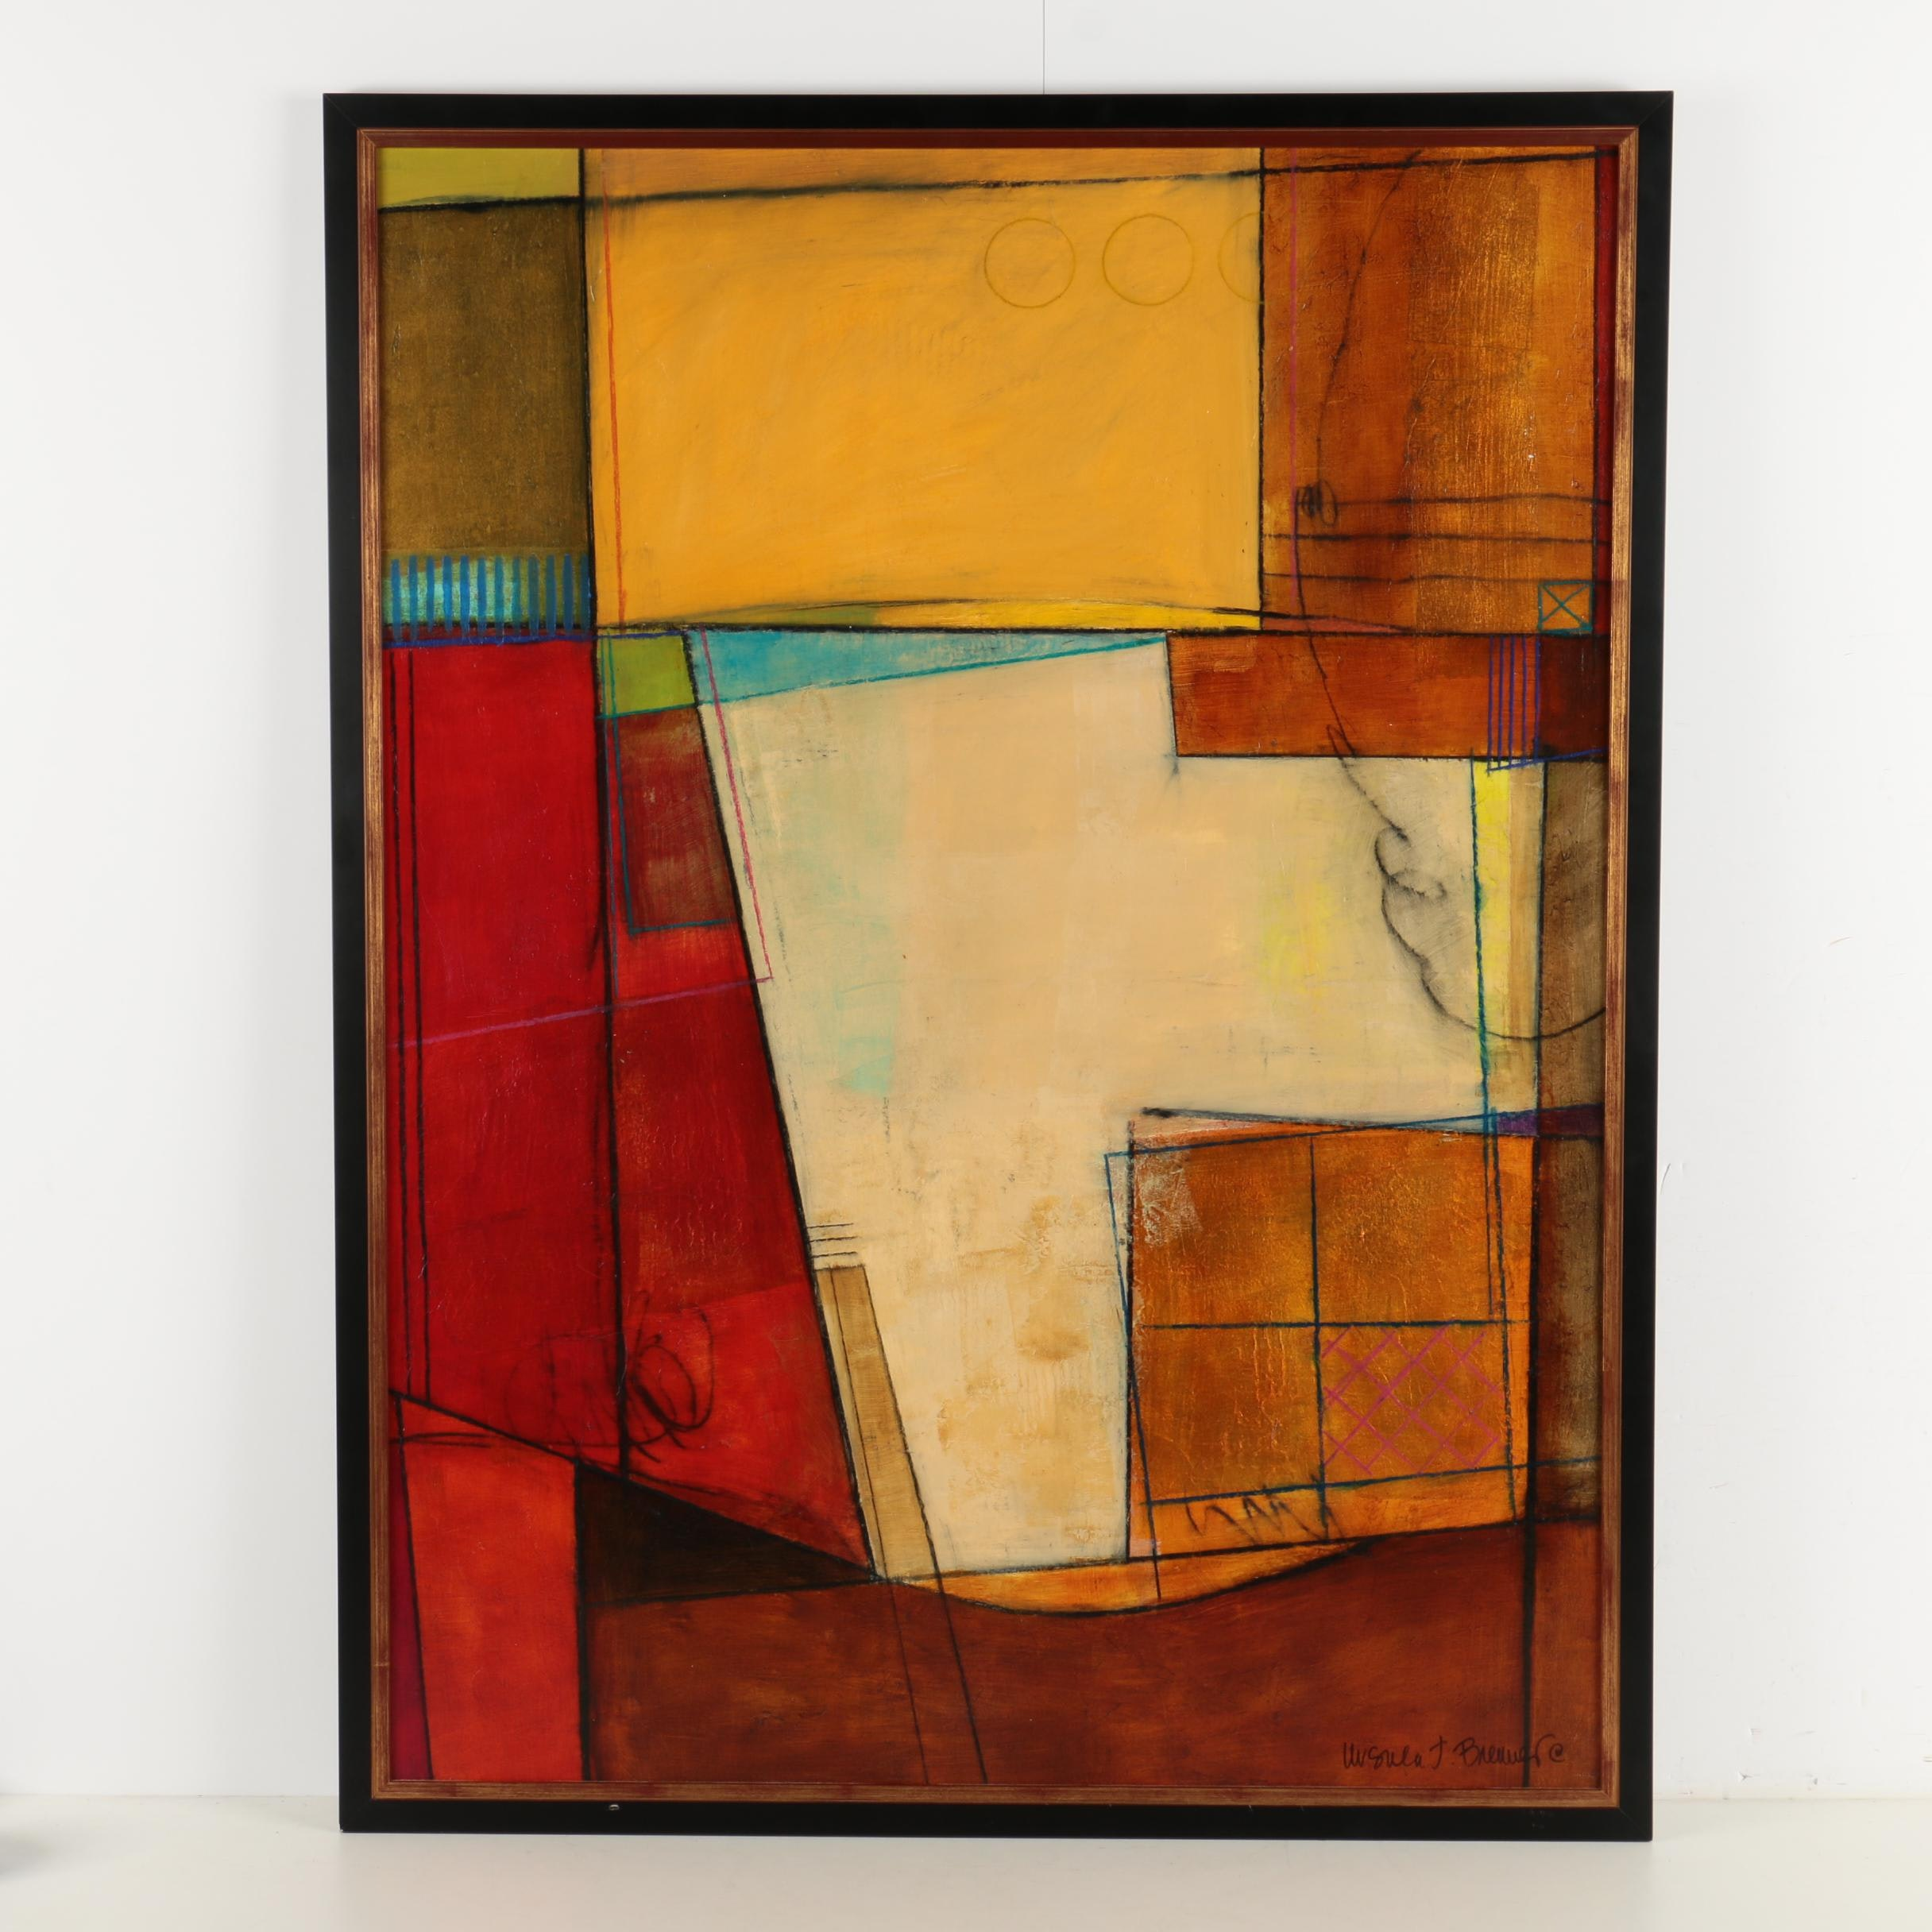 Ursula J. Brenner Oil Painting on Canvas of Abstract Geometric Composition